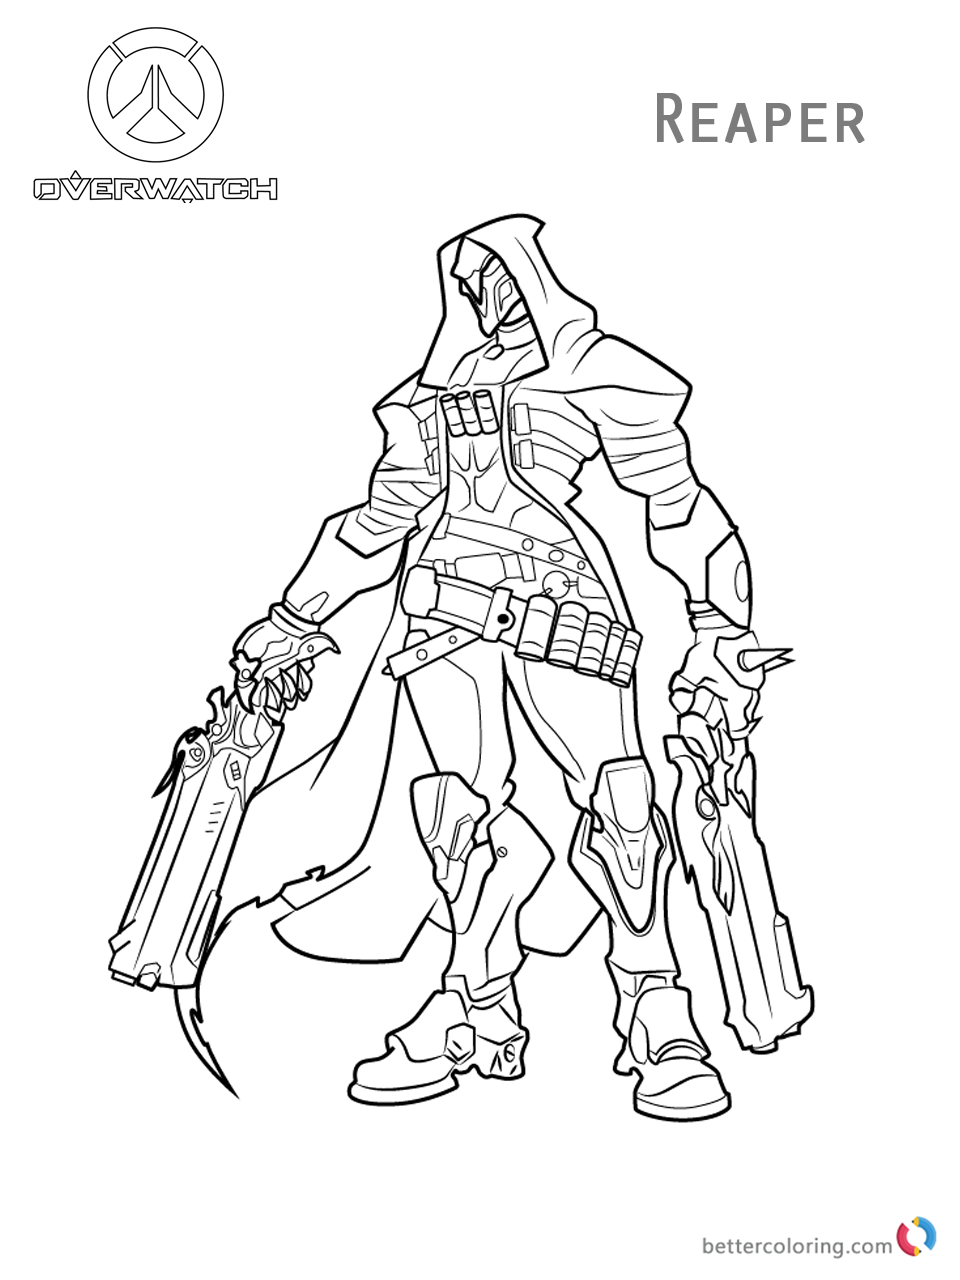 Reaper from overwatch coloring pages free printable for Overwatch coloring pages